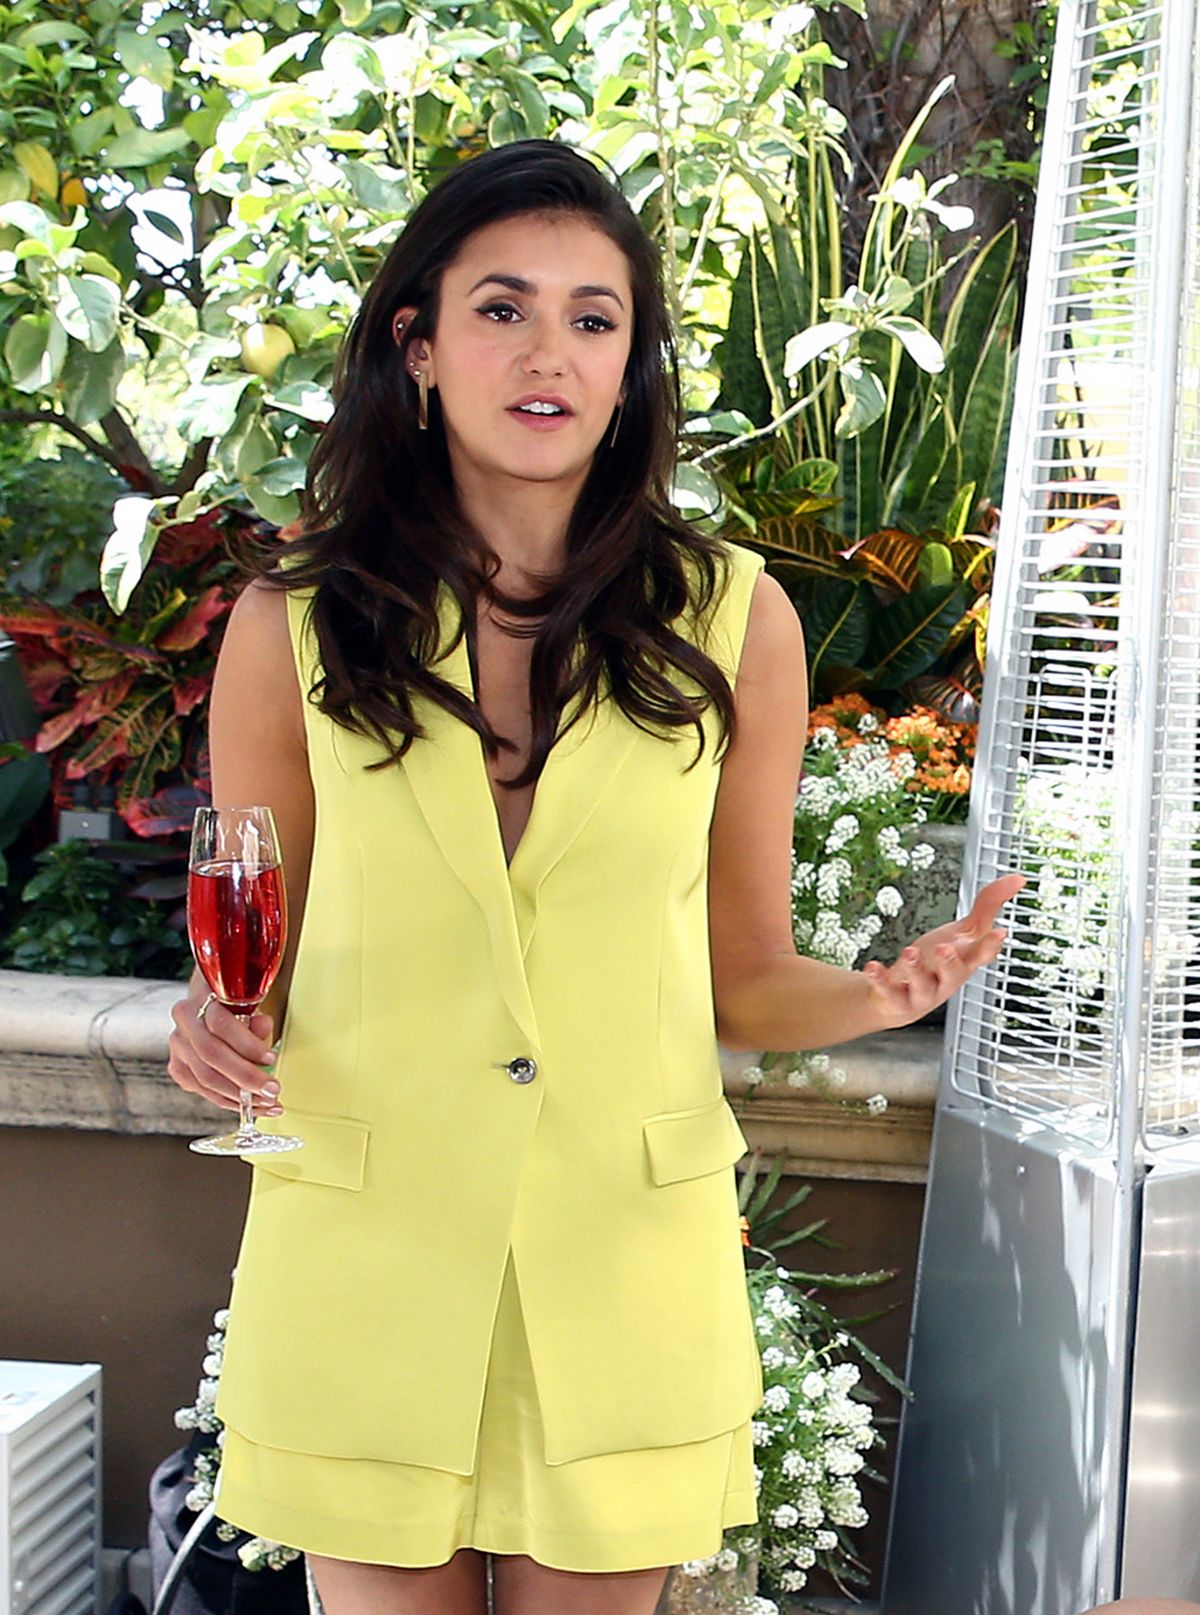 NINA DOBREV at Ciroc Empowered Brunch in West Hollywood 04/12/2016